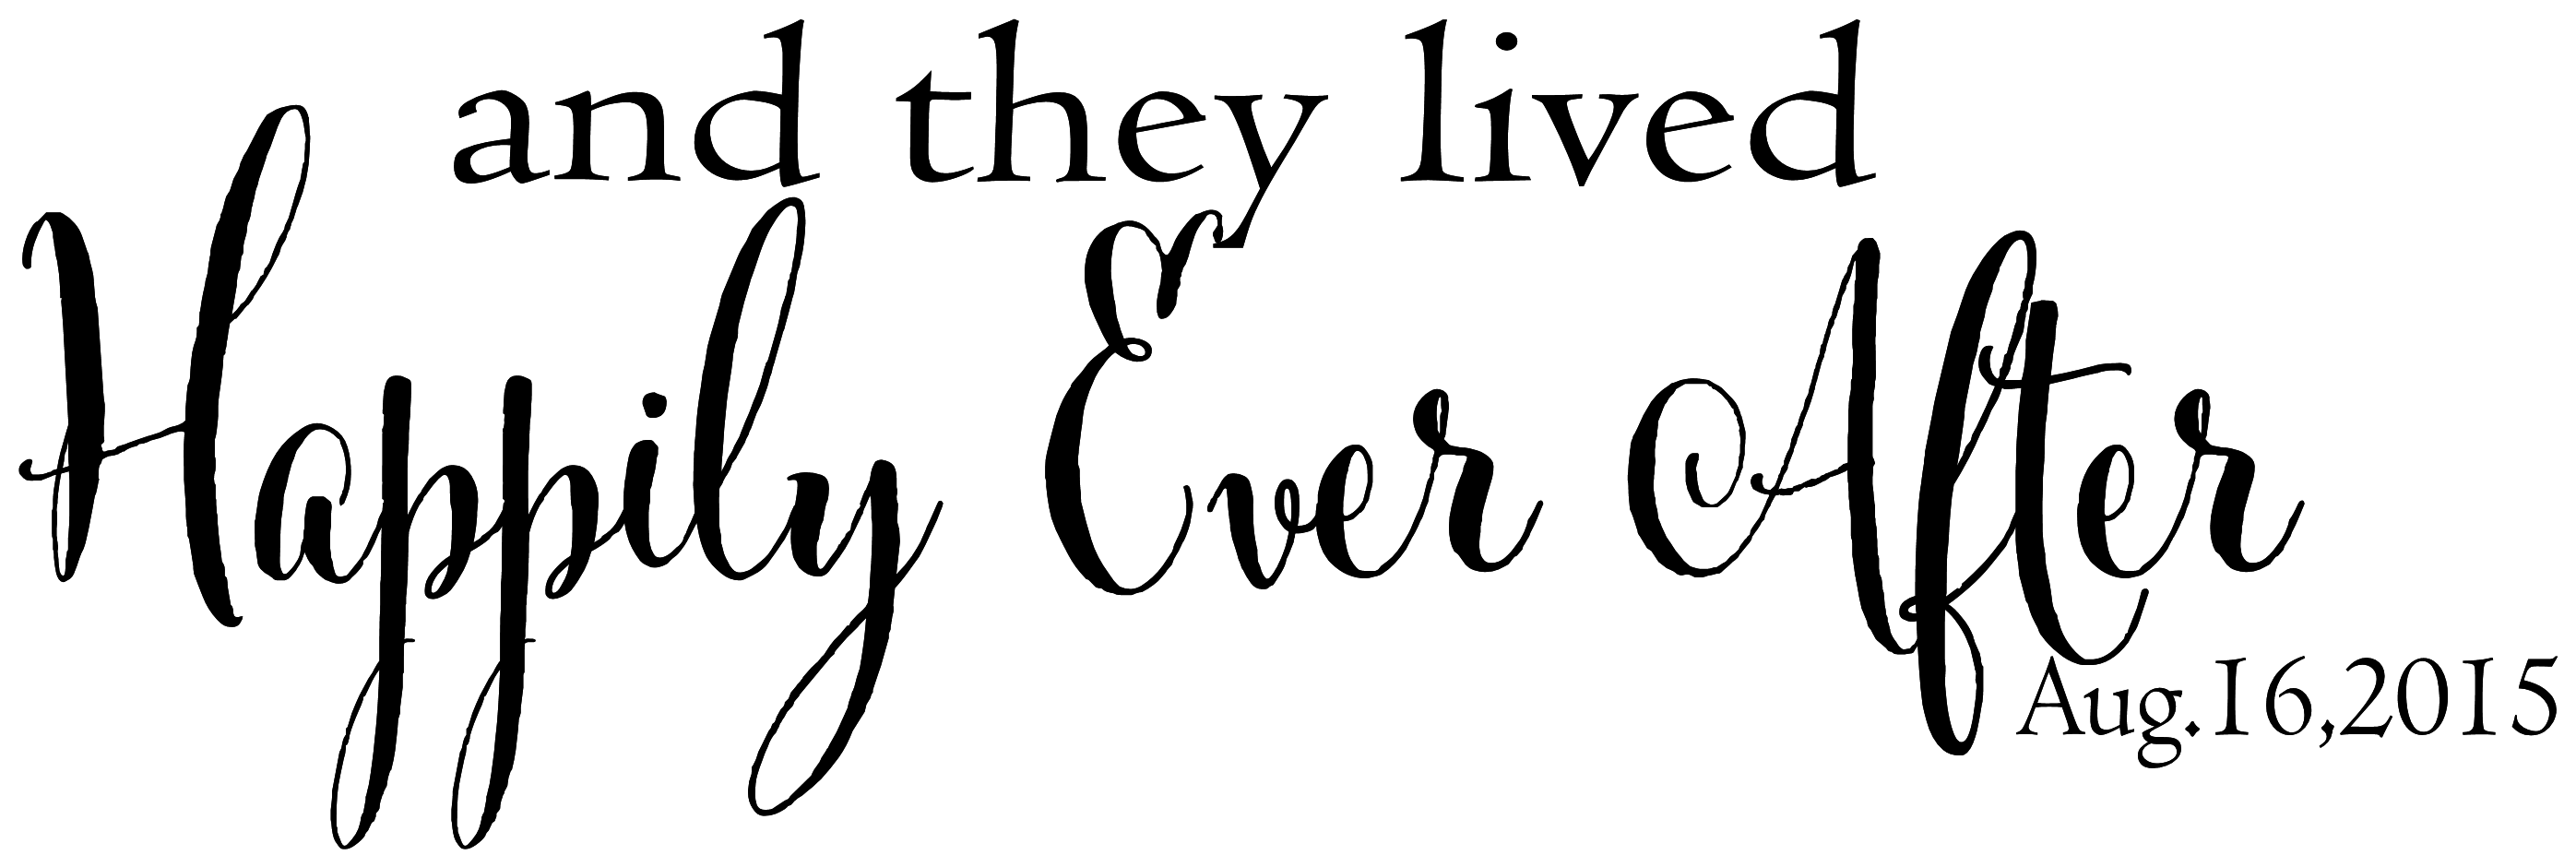 And They Lived Happily Ever After With Custom Date Decal For Walls